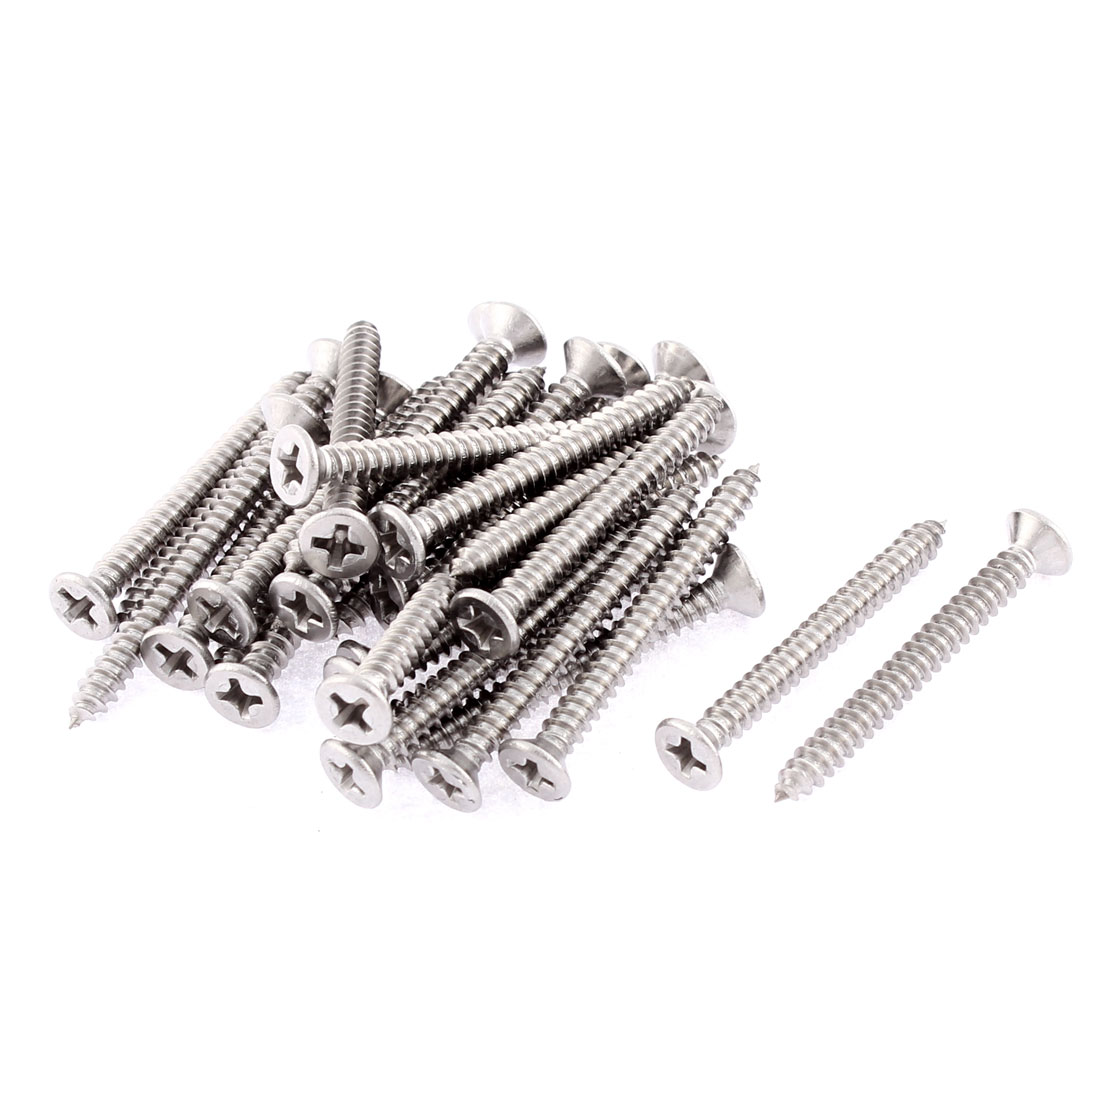 30 Pcs 3.9mmx38mm Stainless Steel Phillips Flat Head Sheet Self Tapping Screws